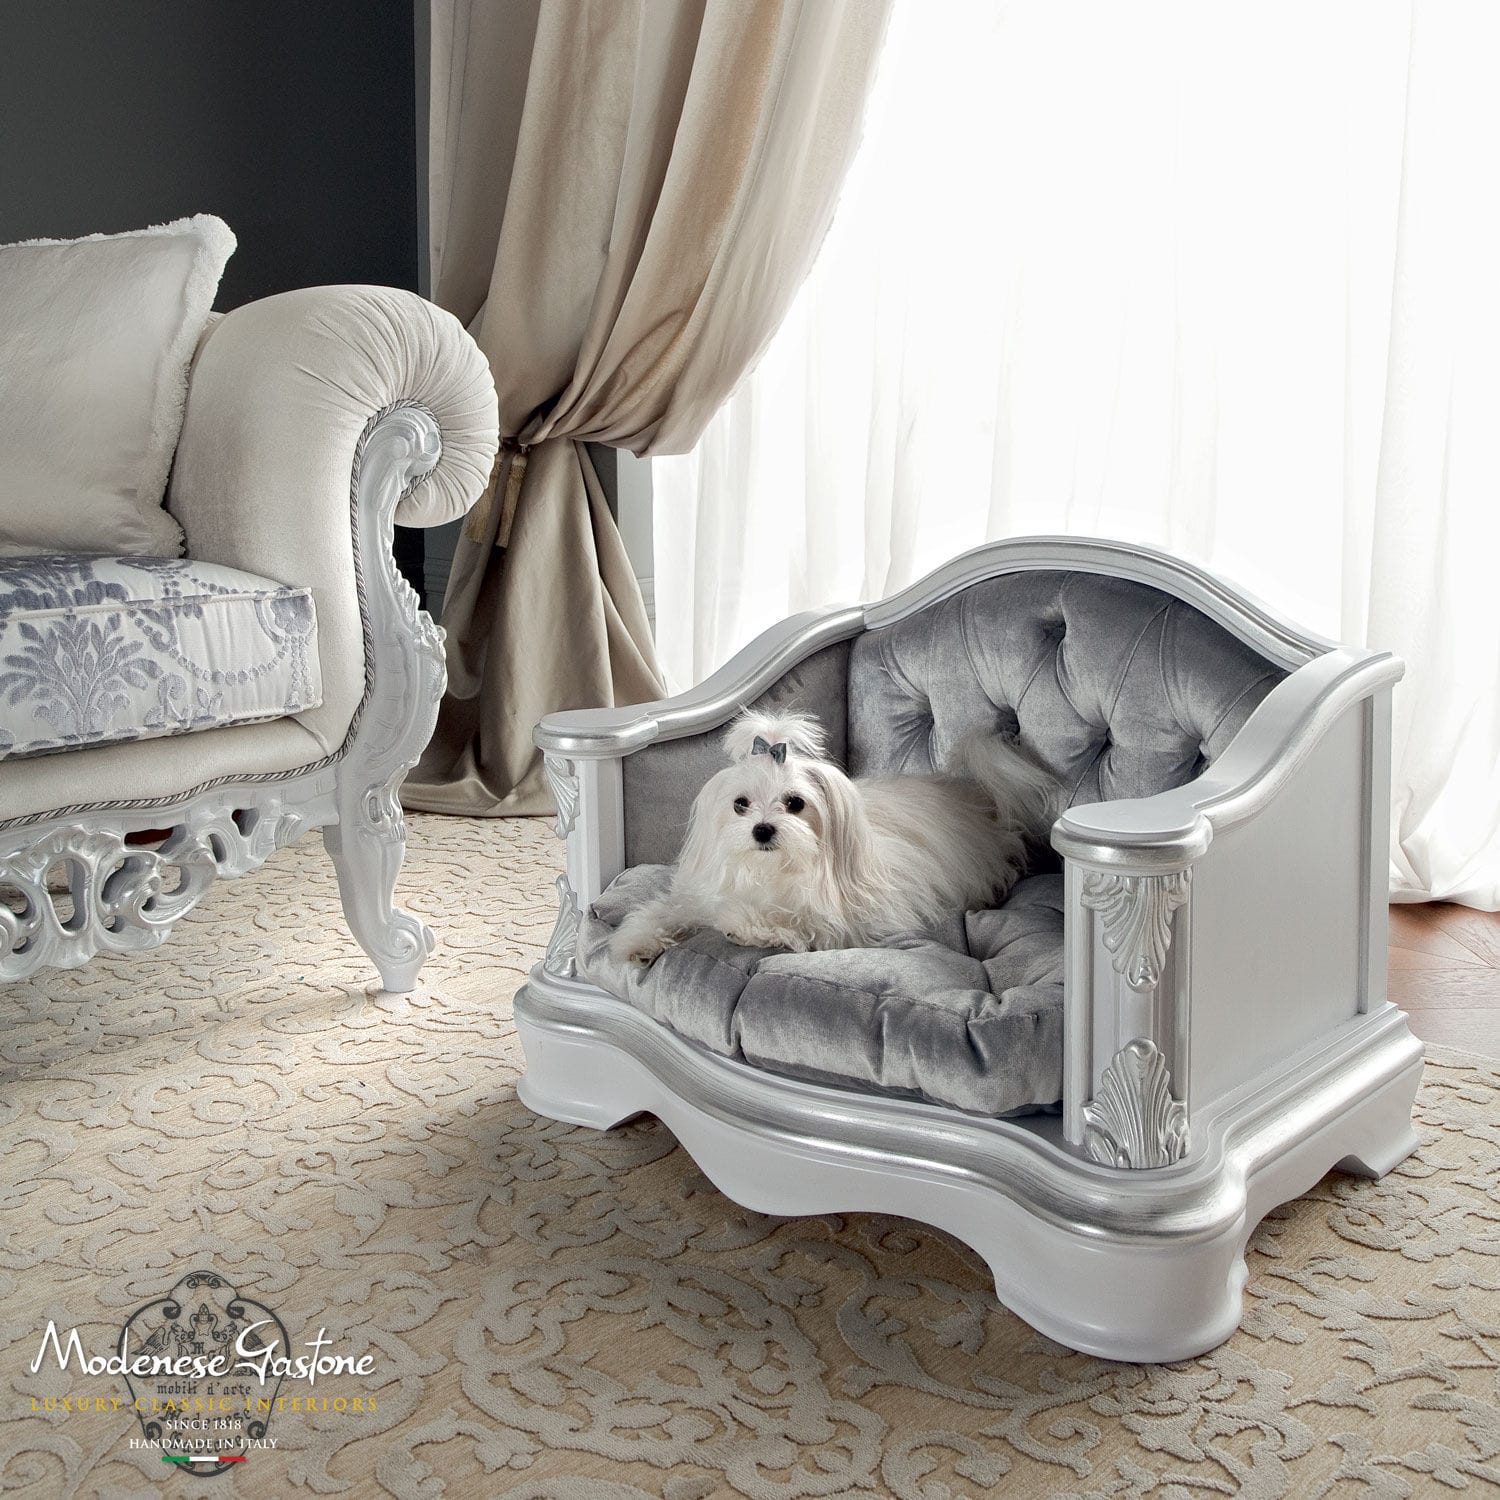 luxury pet furniture. classic armchair wooden pet dogs and cats bella vita modenese gastone luxury furniture p